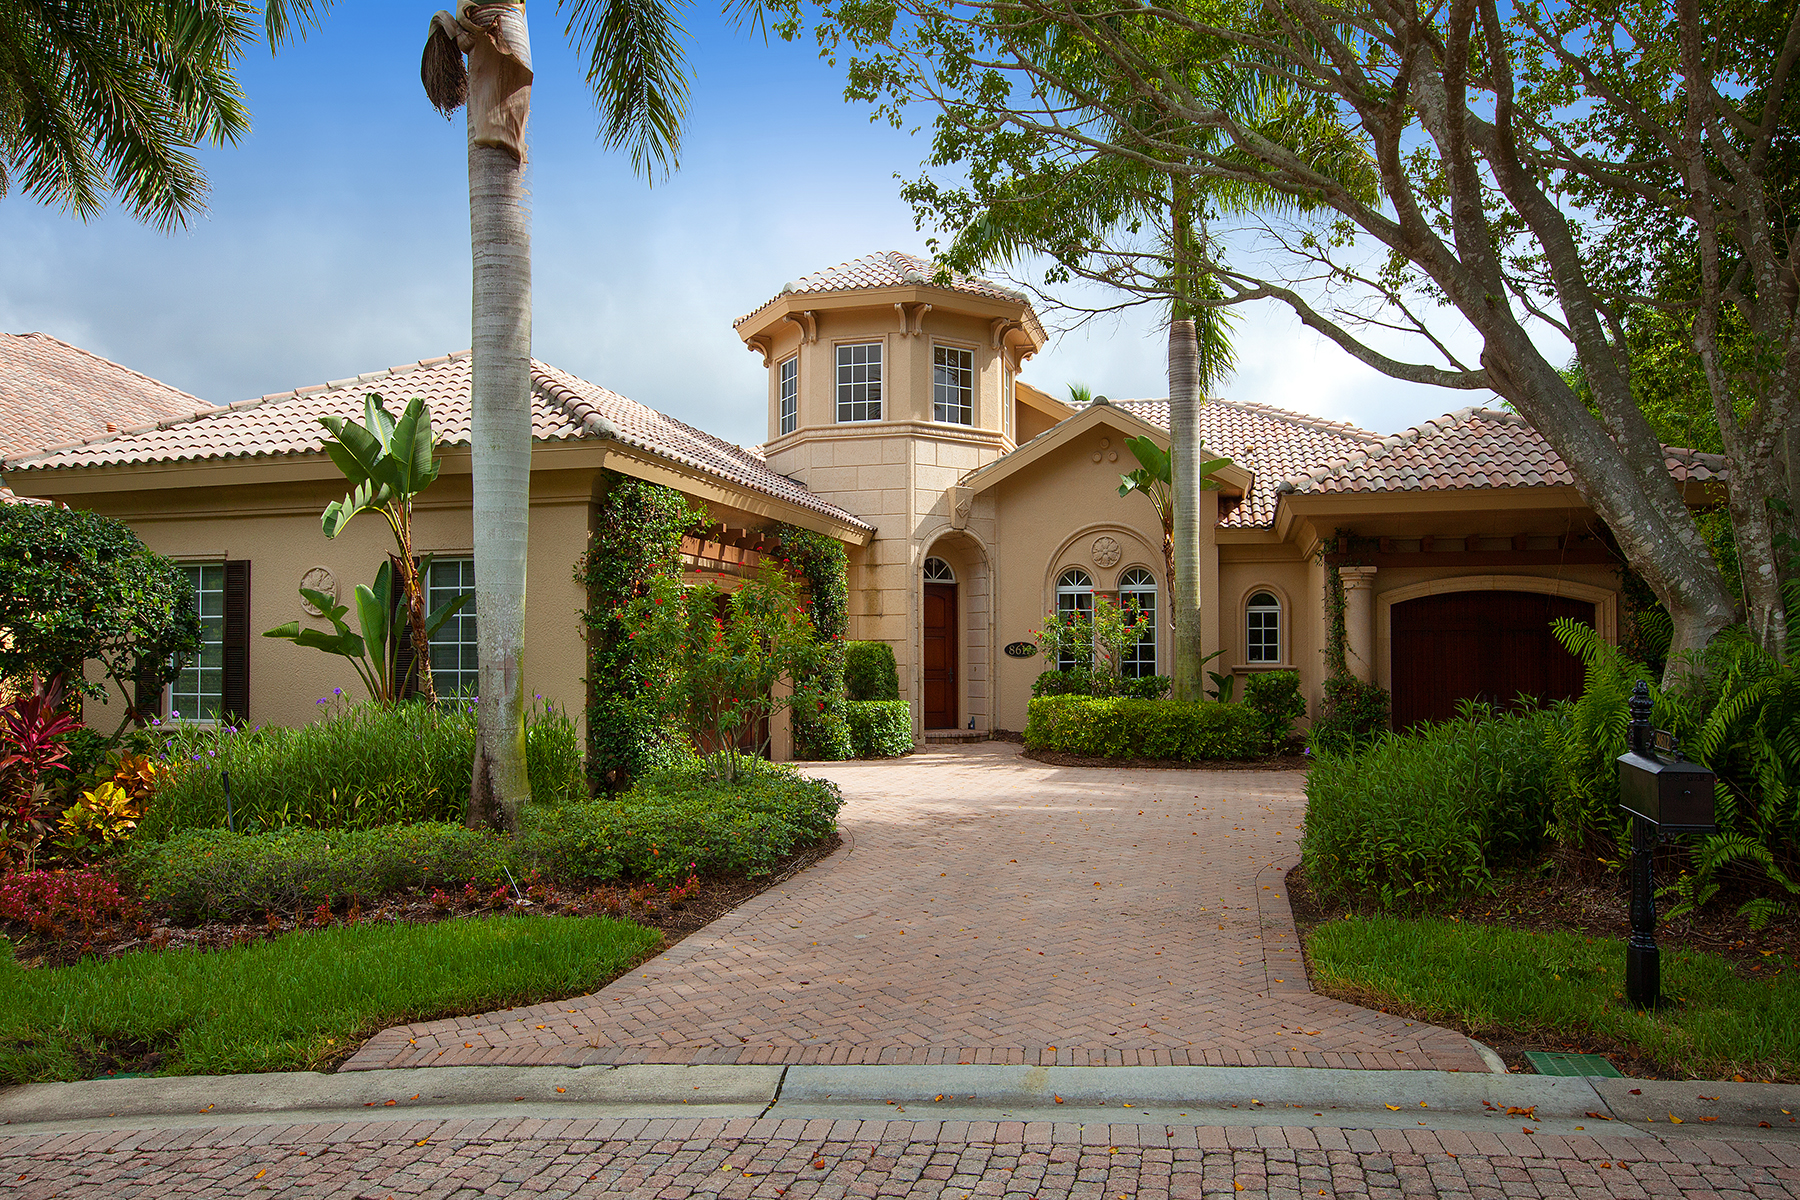 Single Family Home for Sale at FIDDLER'S CREEK - MAJORCA 8612 Majorca Ln Naples, Florida 34114 United States